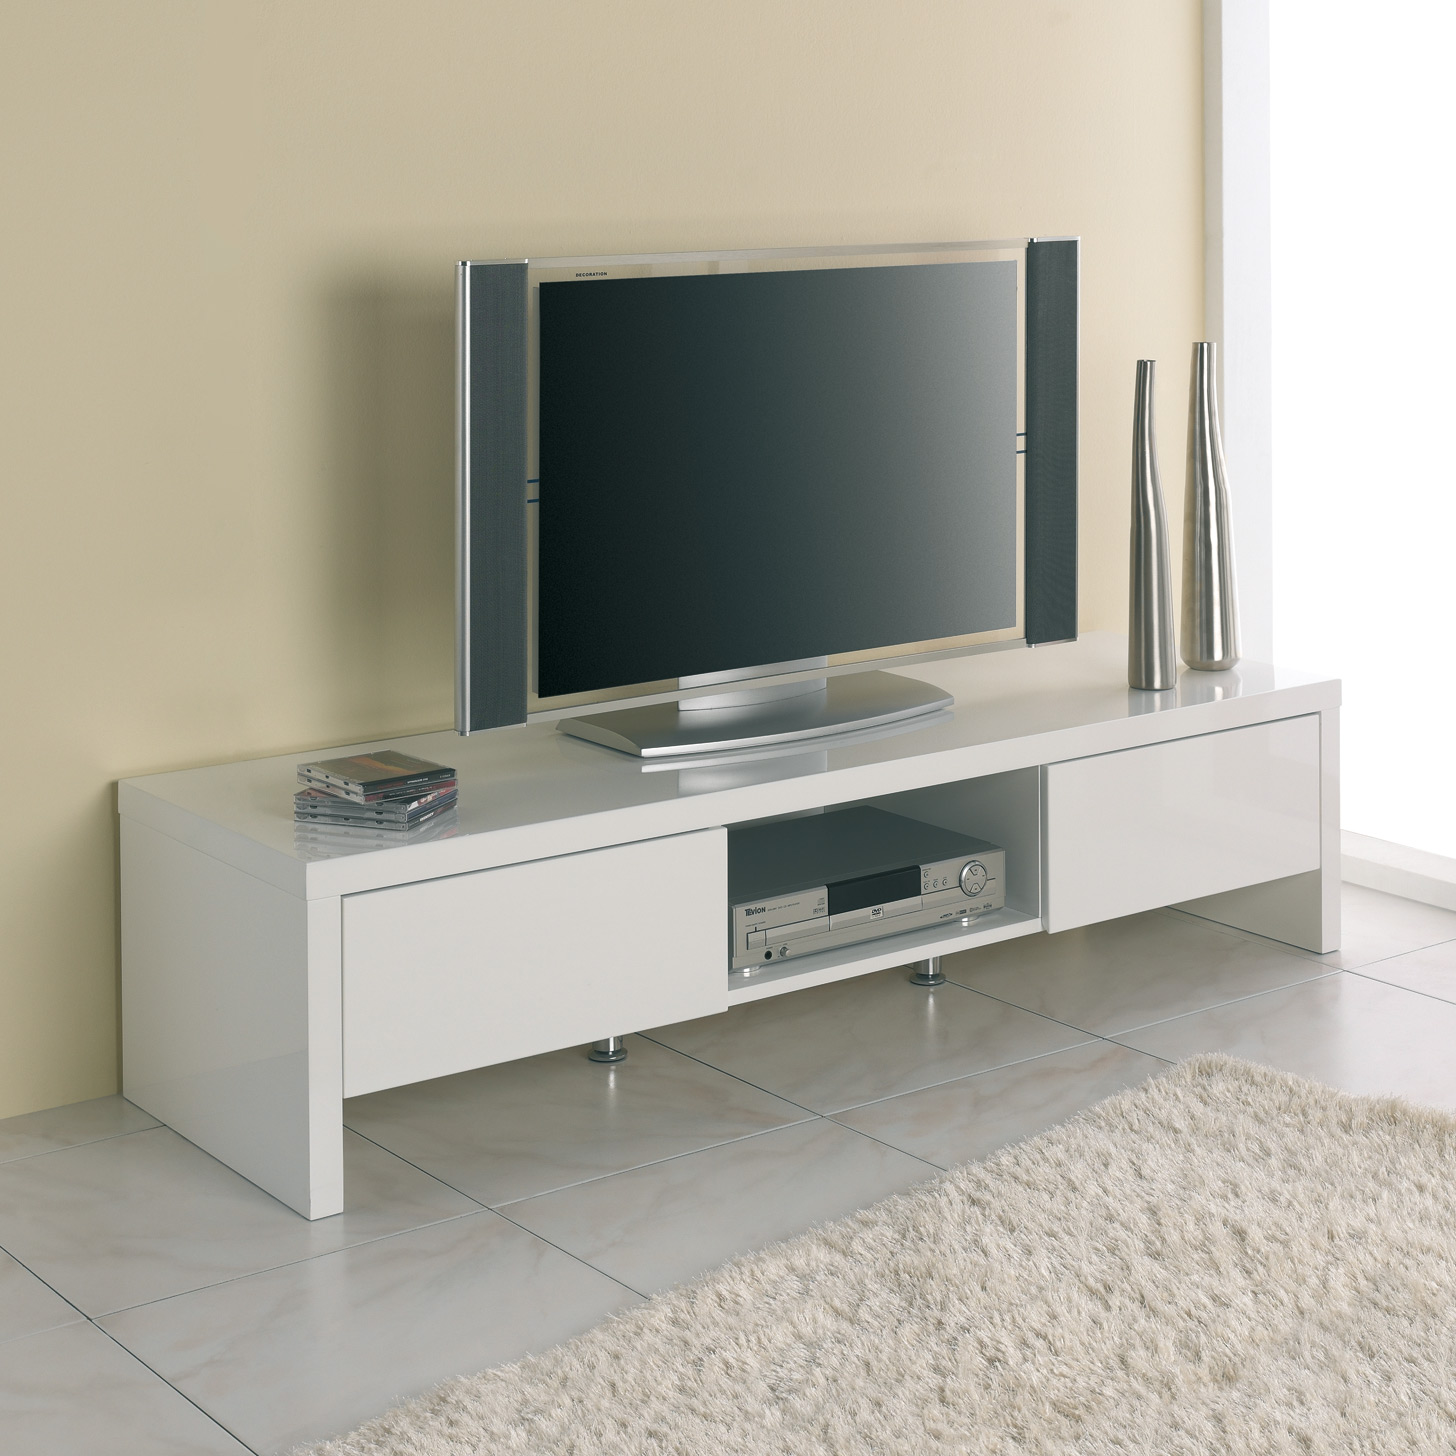 Quelle hauteur meuble tv suspendu royal sofa id e de for Meuble tv suspendu 120 cm